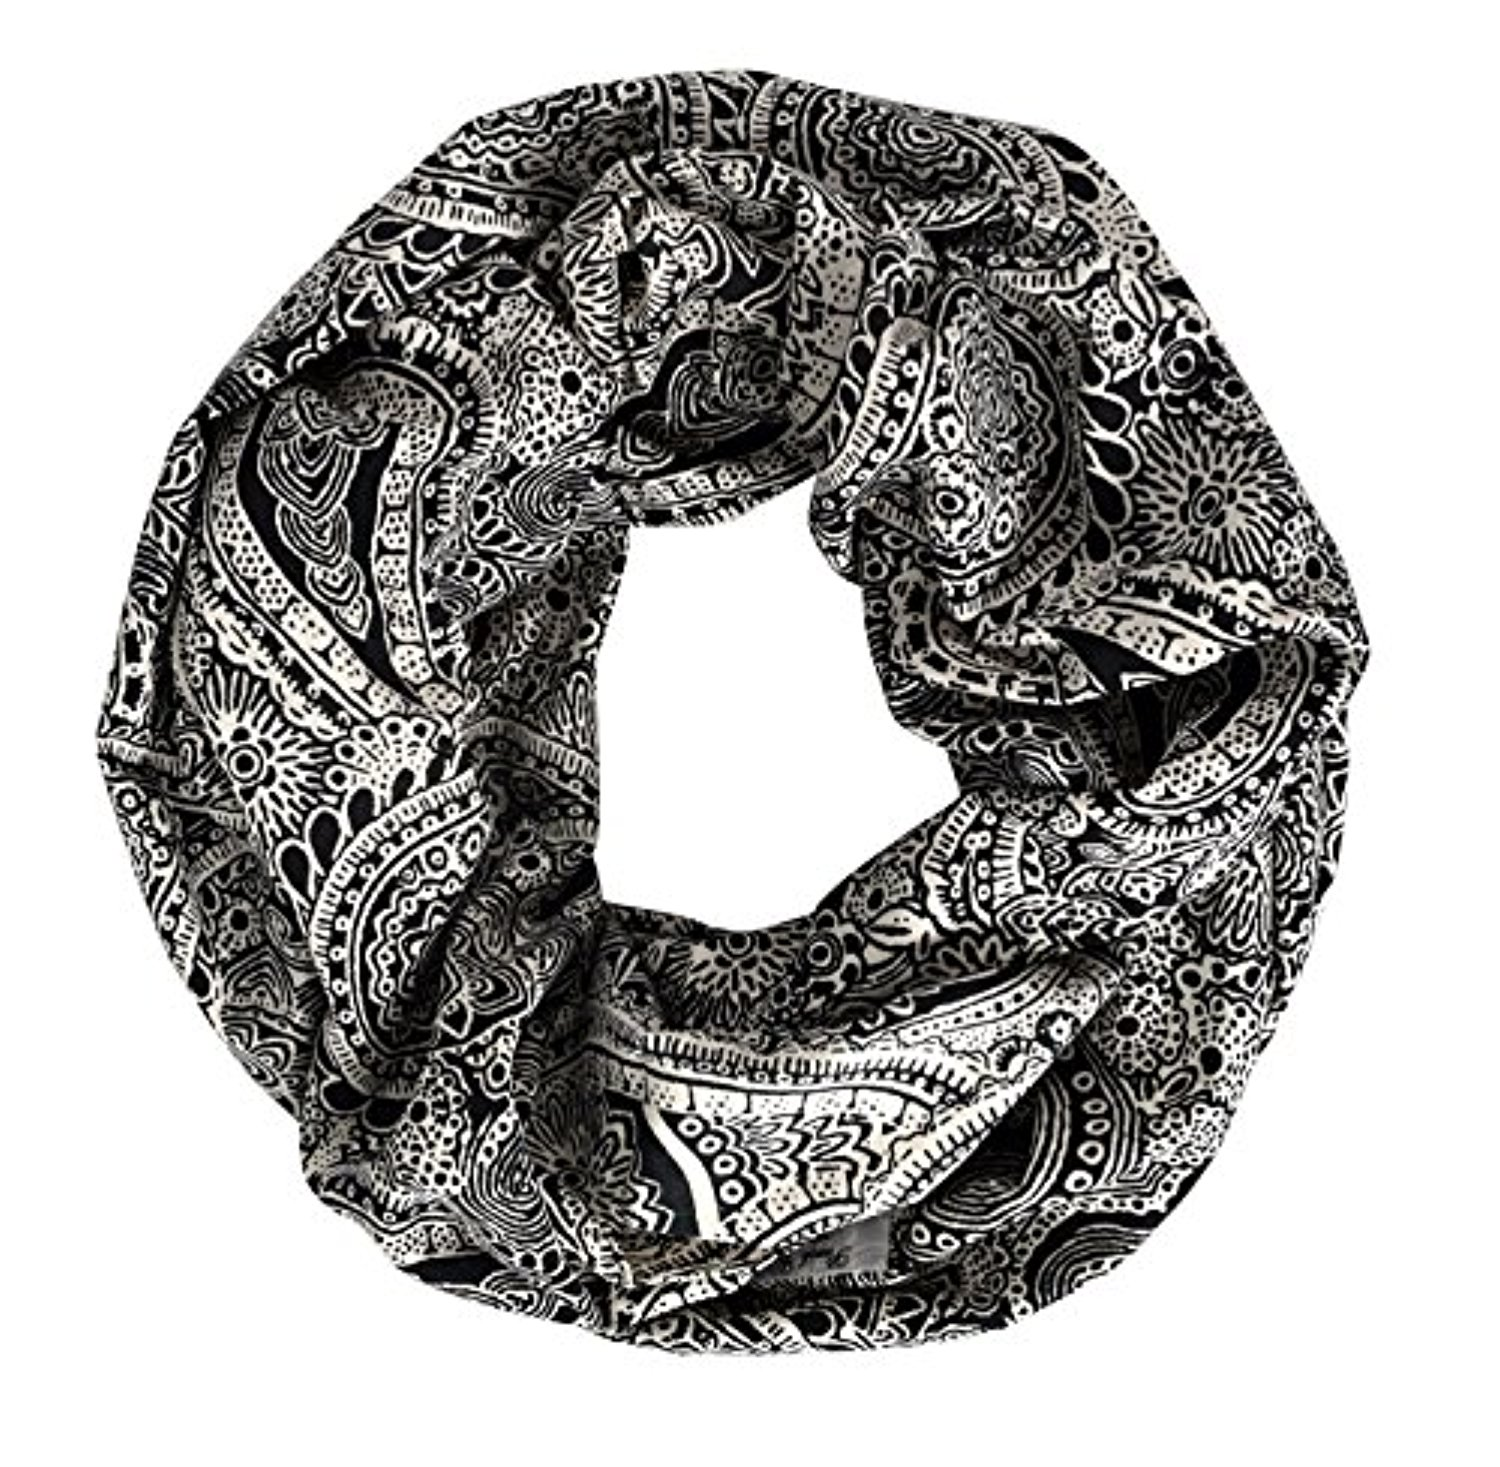 Peach Couture Summer Fashion Paisley Printed Infinity Loop Scarves (One Size, Black)